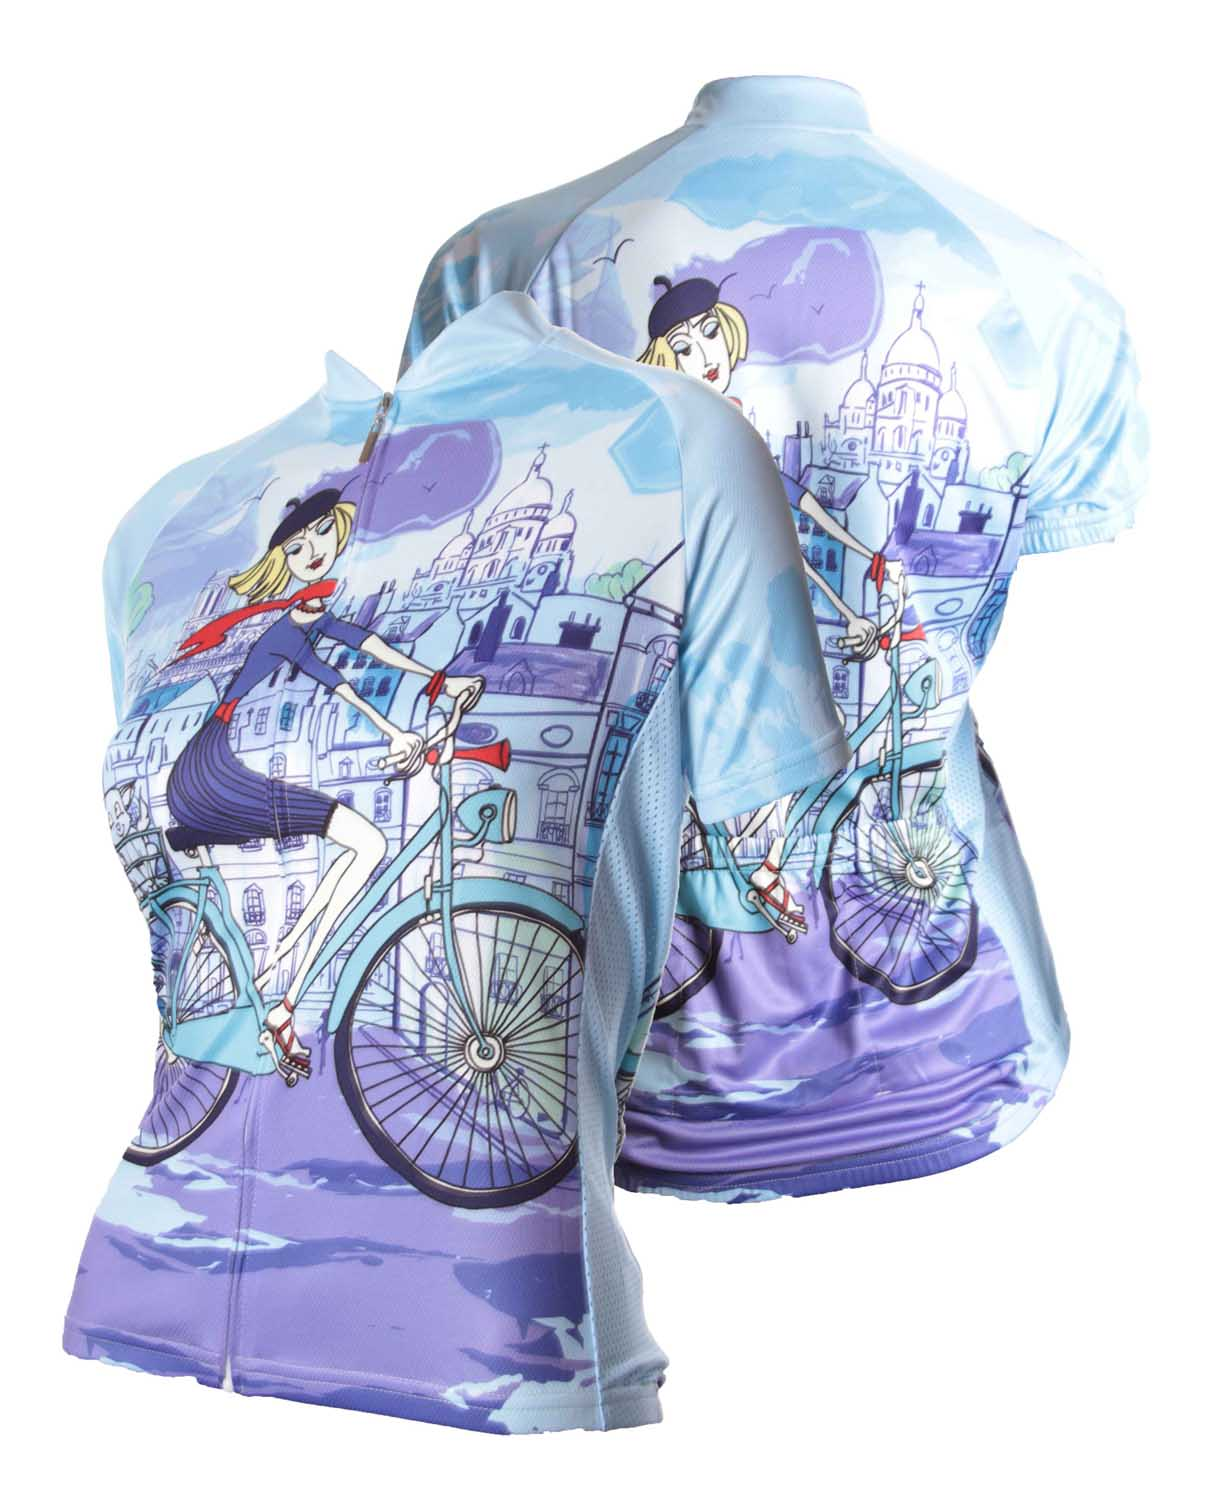 83 Sportswear Riding in Paris Woman's Cycling Jersey